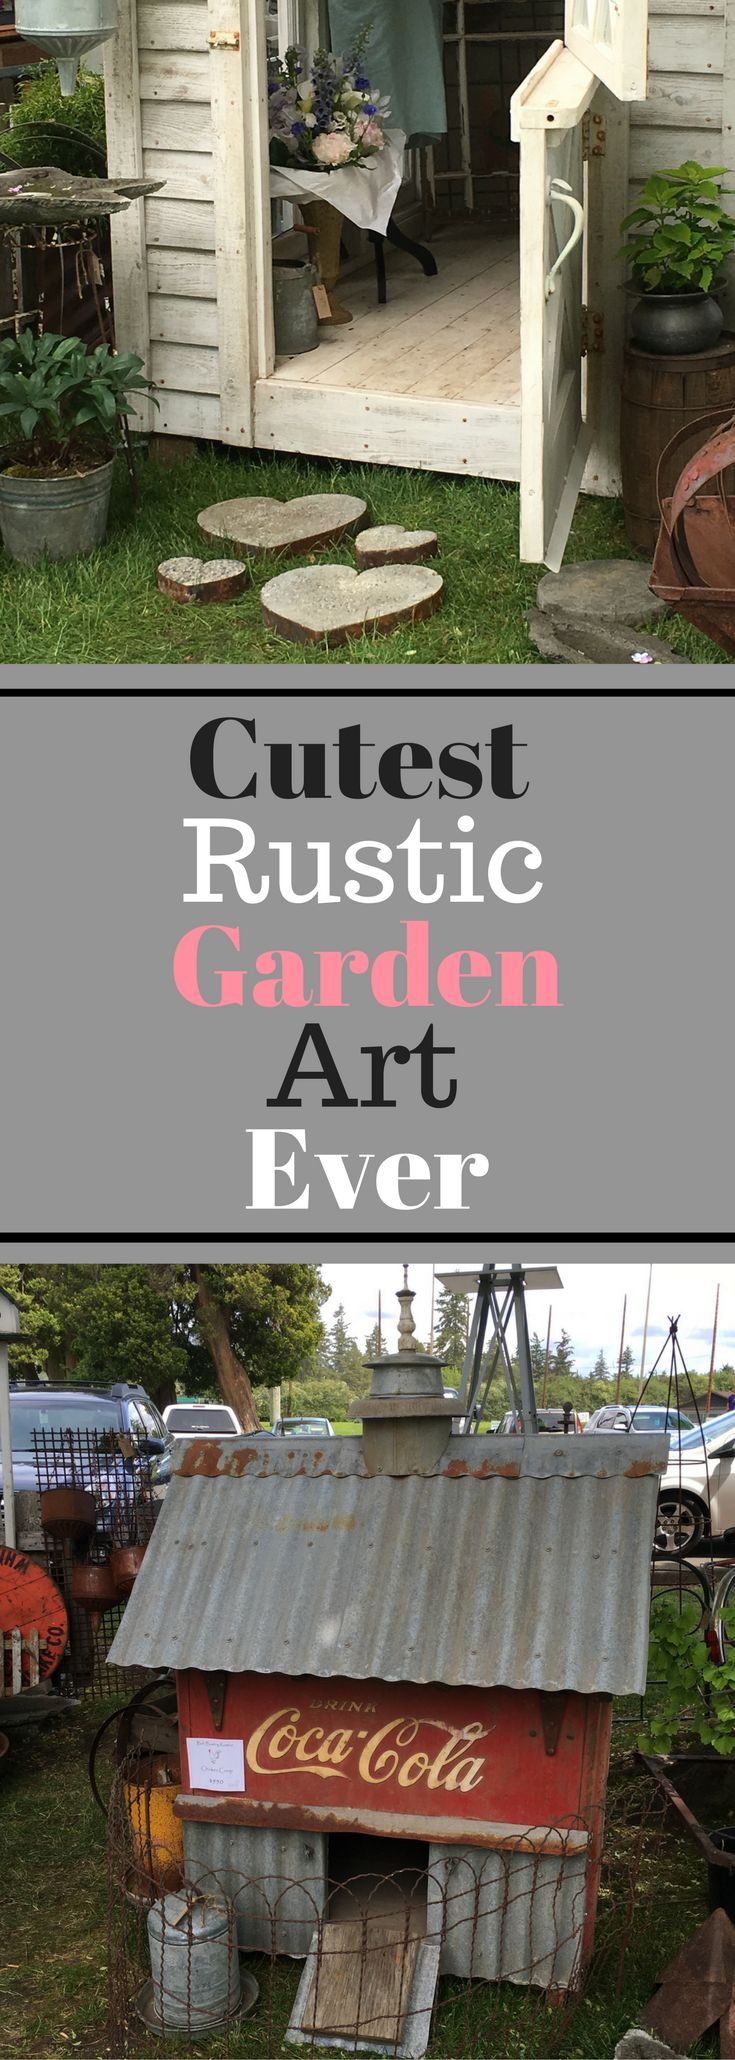 Garden Yard Art Ideas how to make garden art with old windows Cutest Rustic Garden Art Ideas Ever